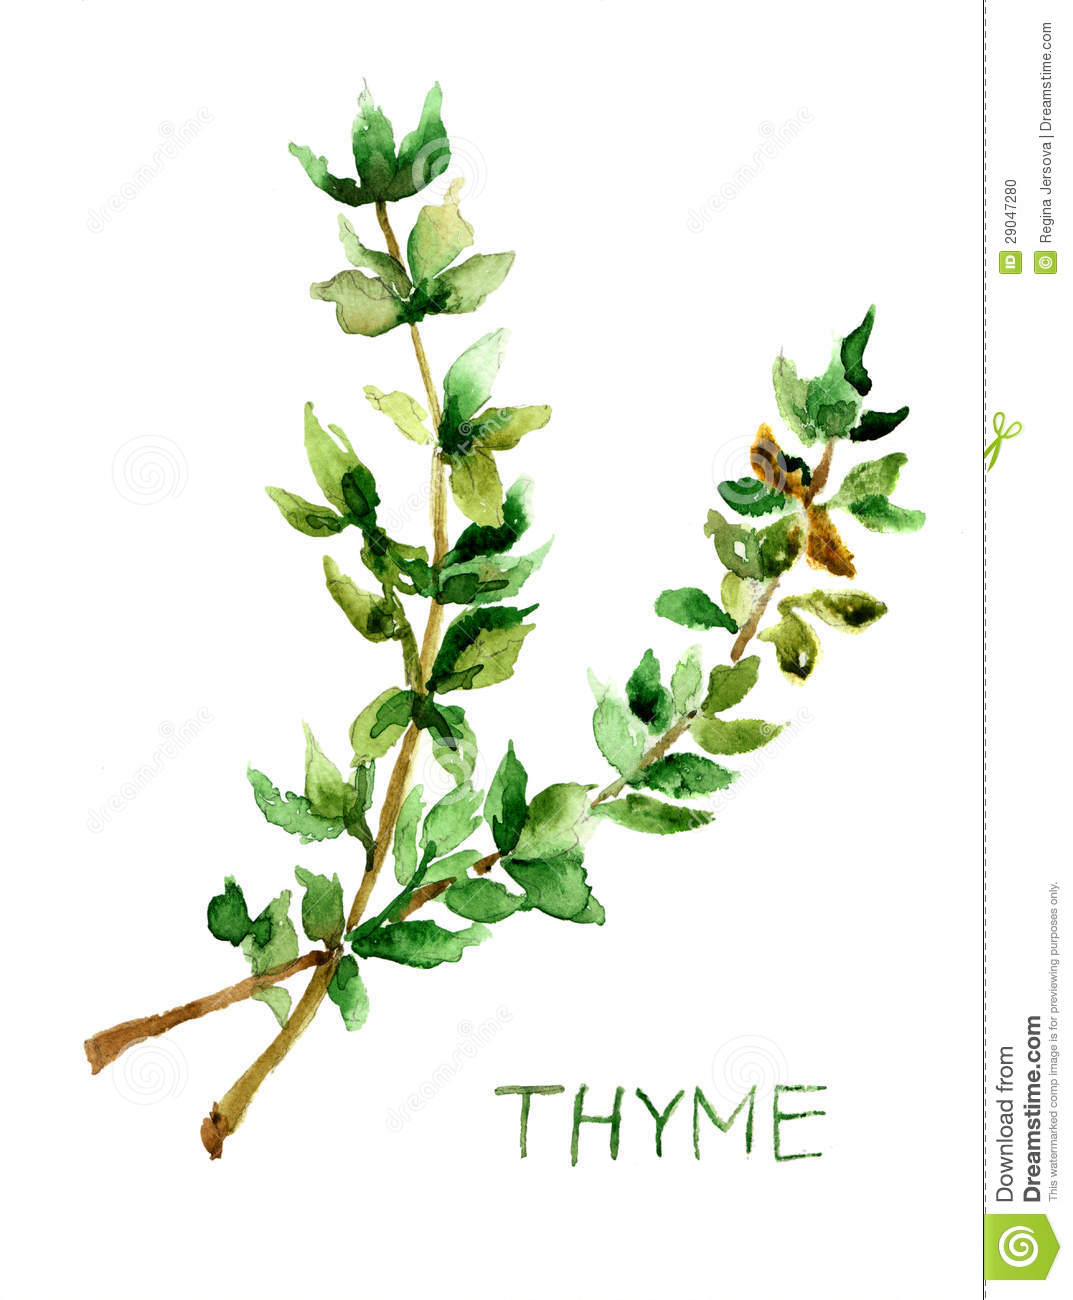 Thyme, Watercolor Illustration Stock Photo - Image: 29047280